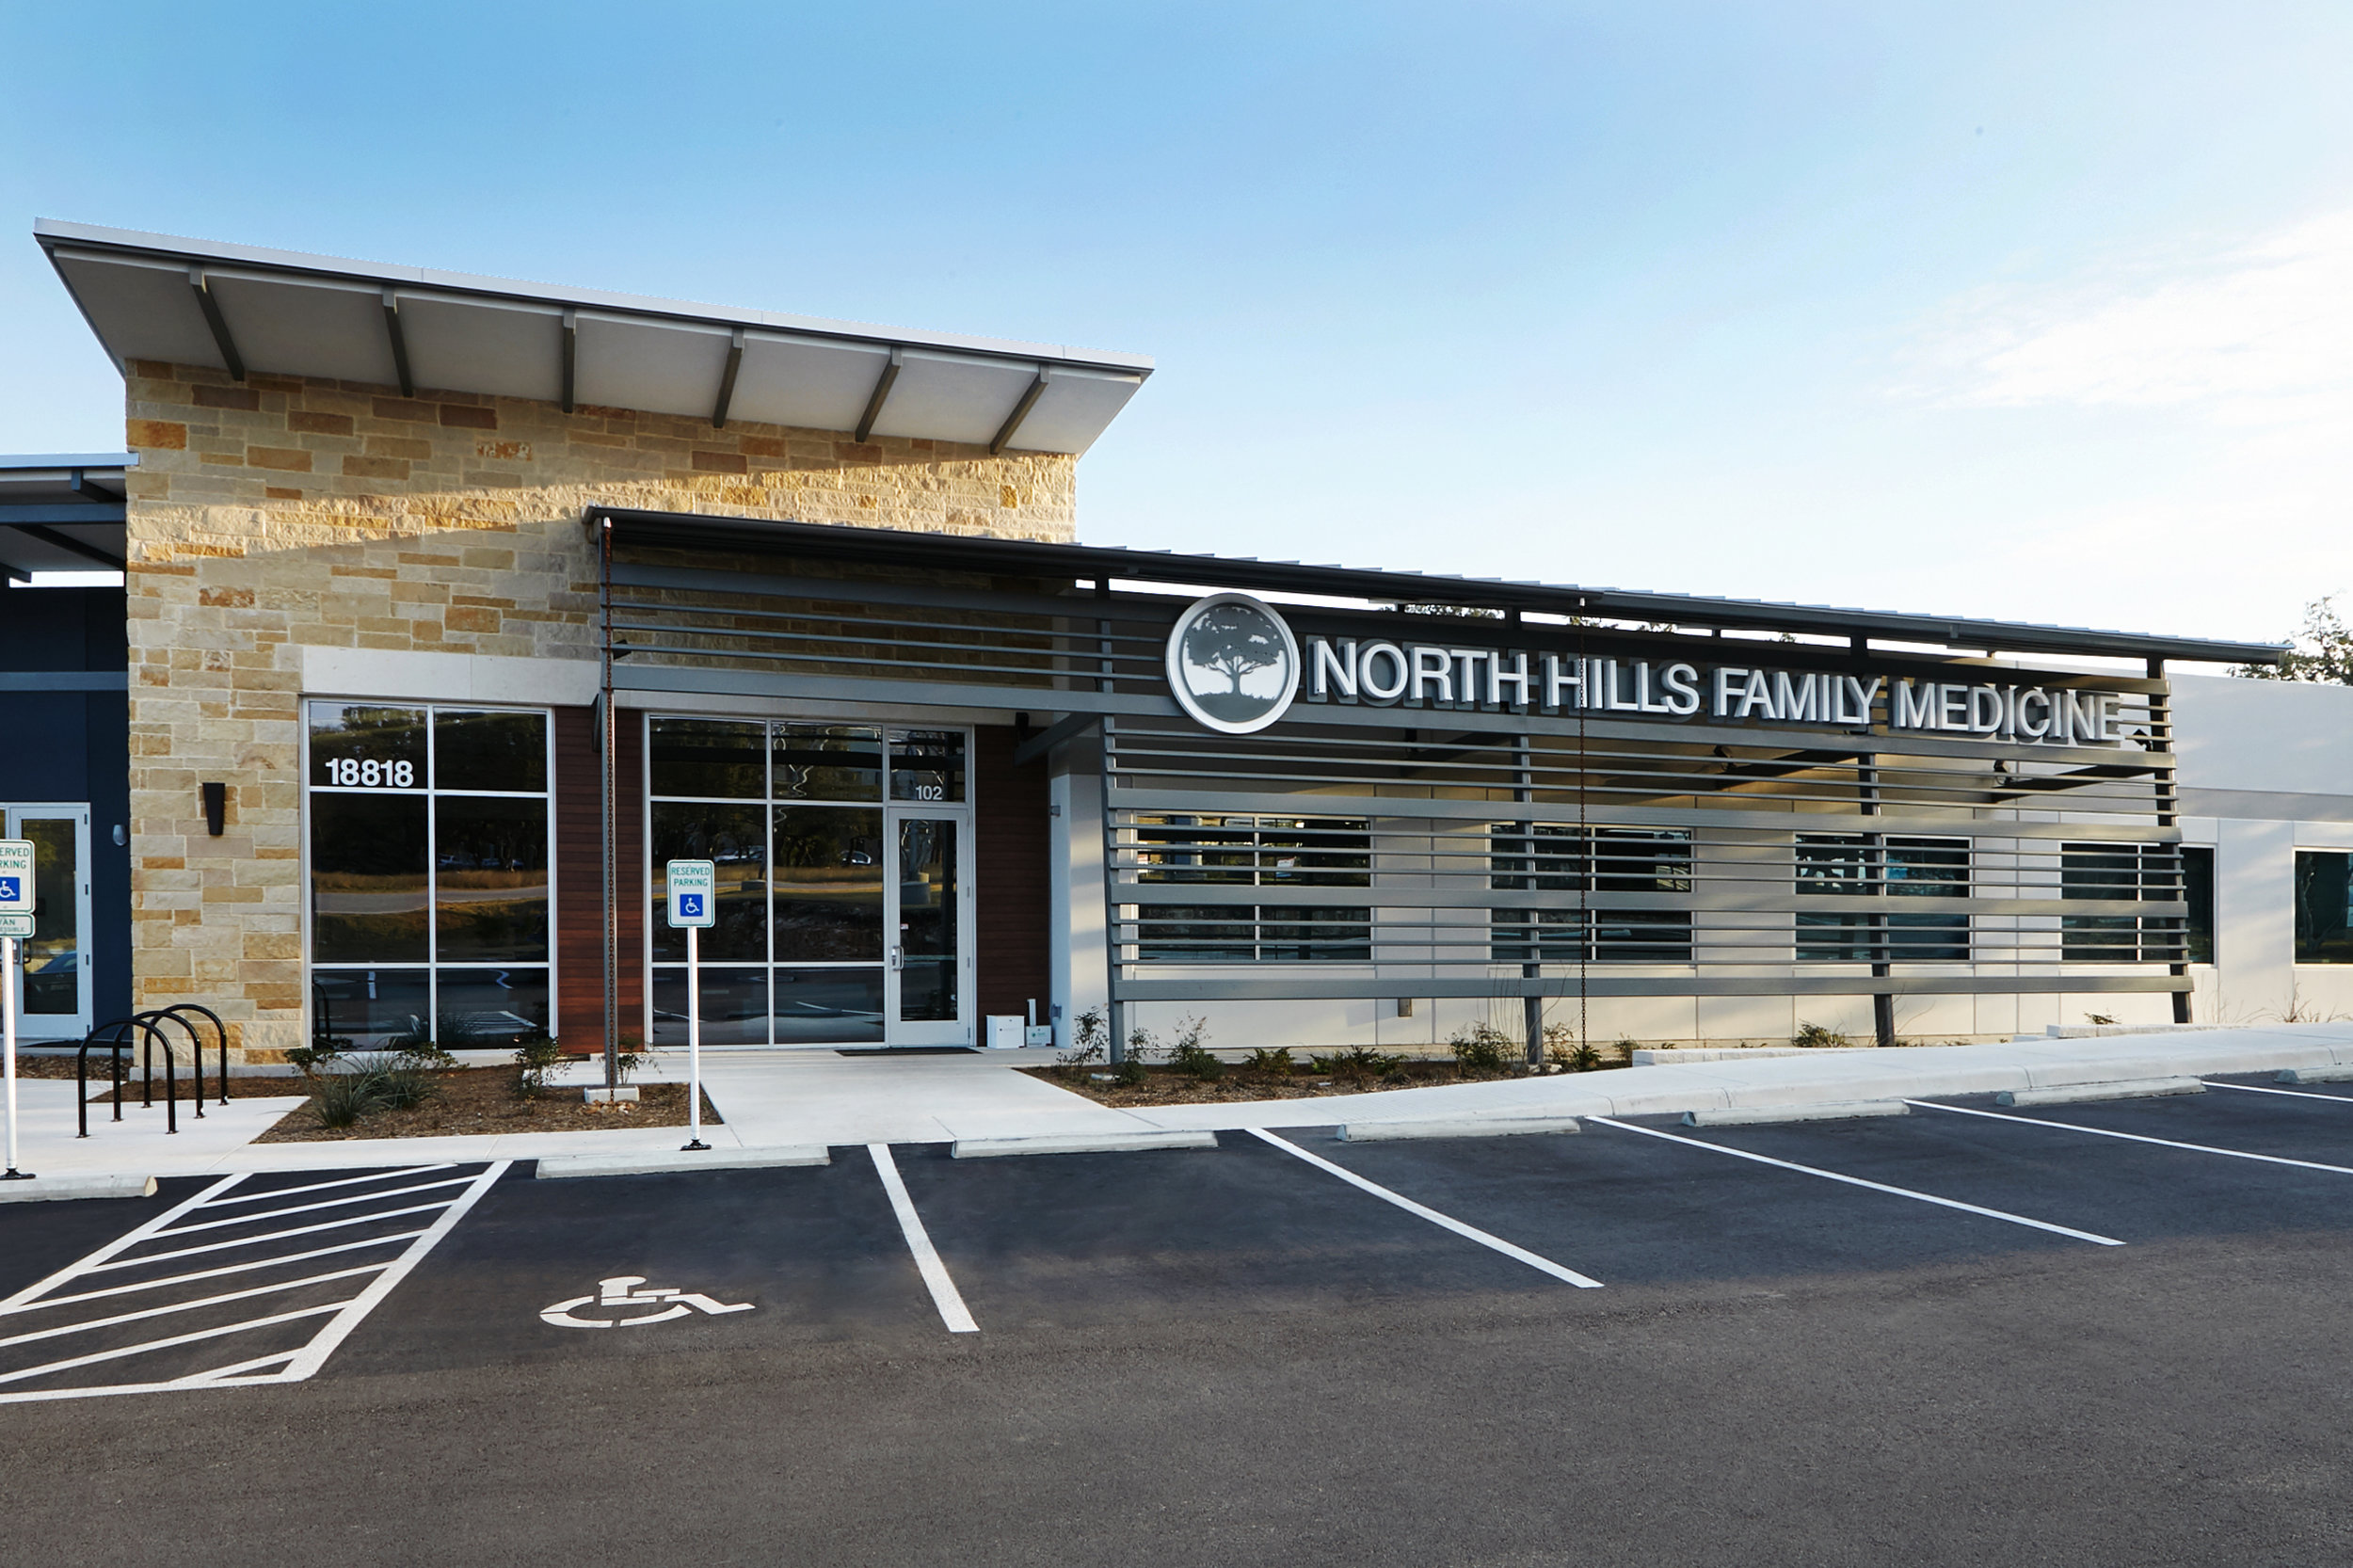 Hill Country Family Medicine_MG_1172.jpg